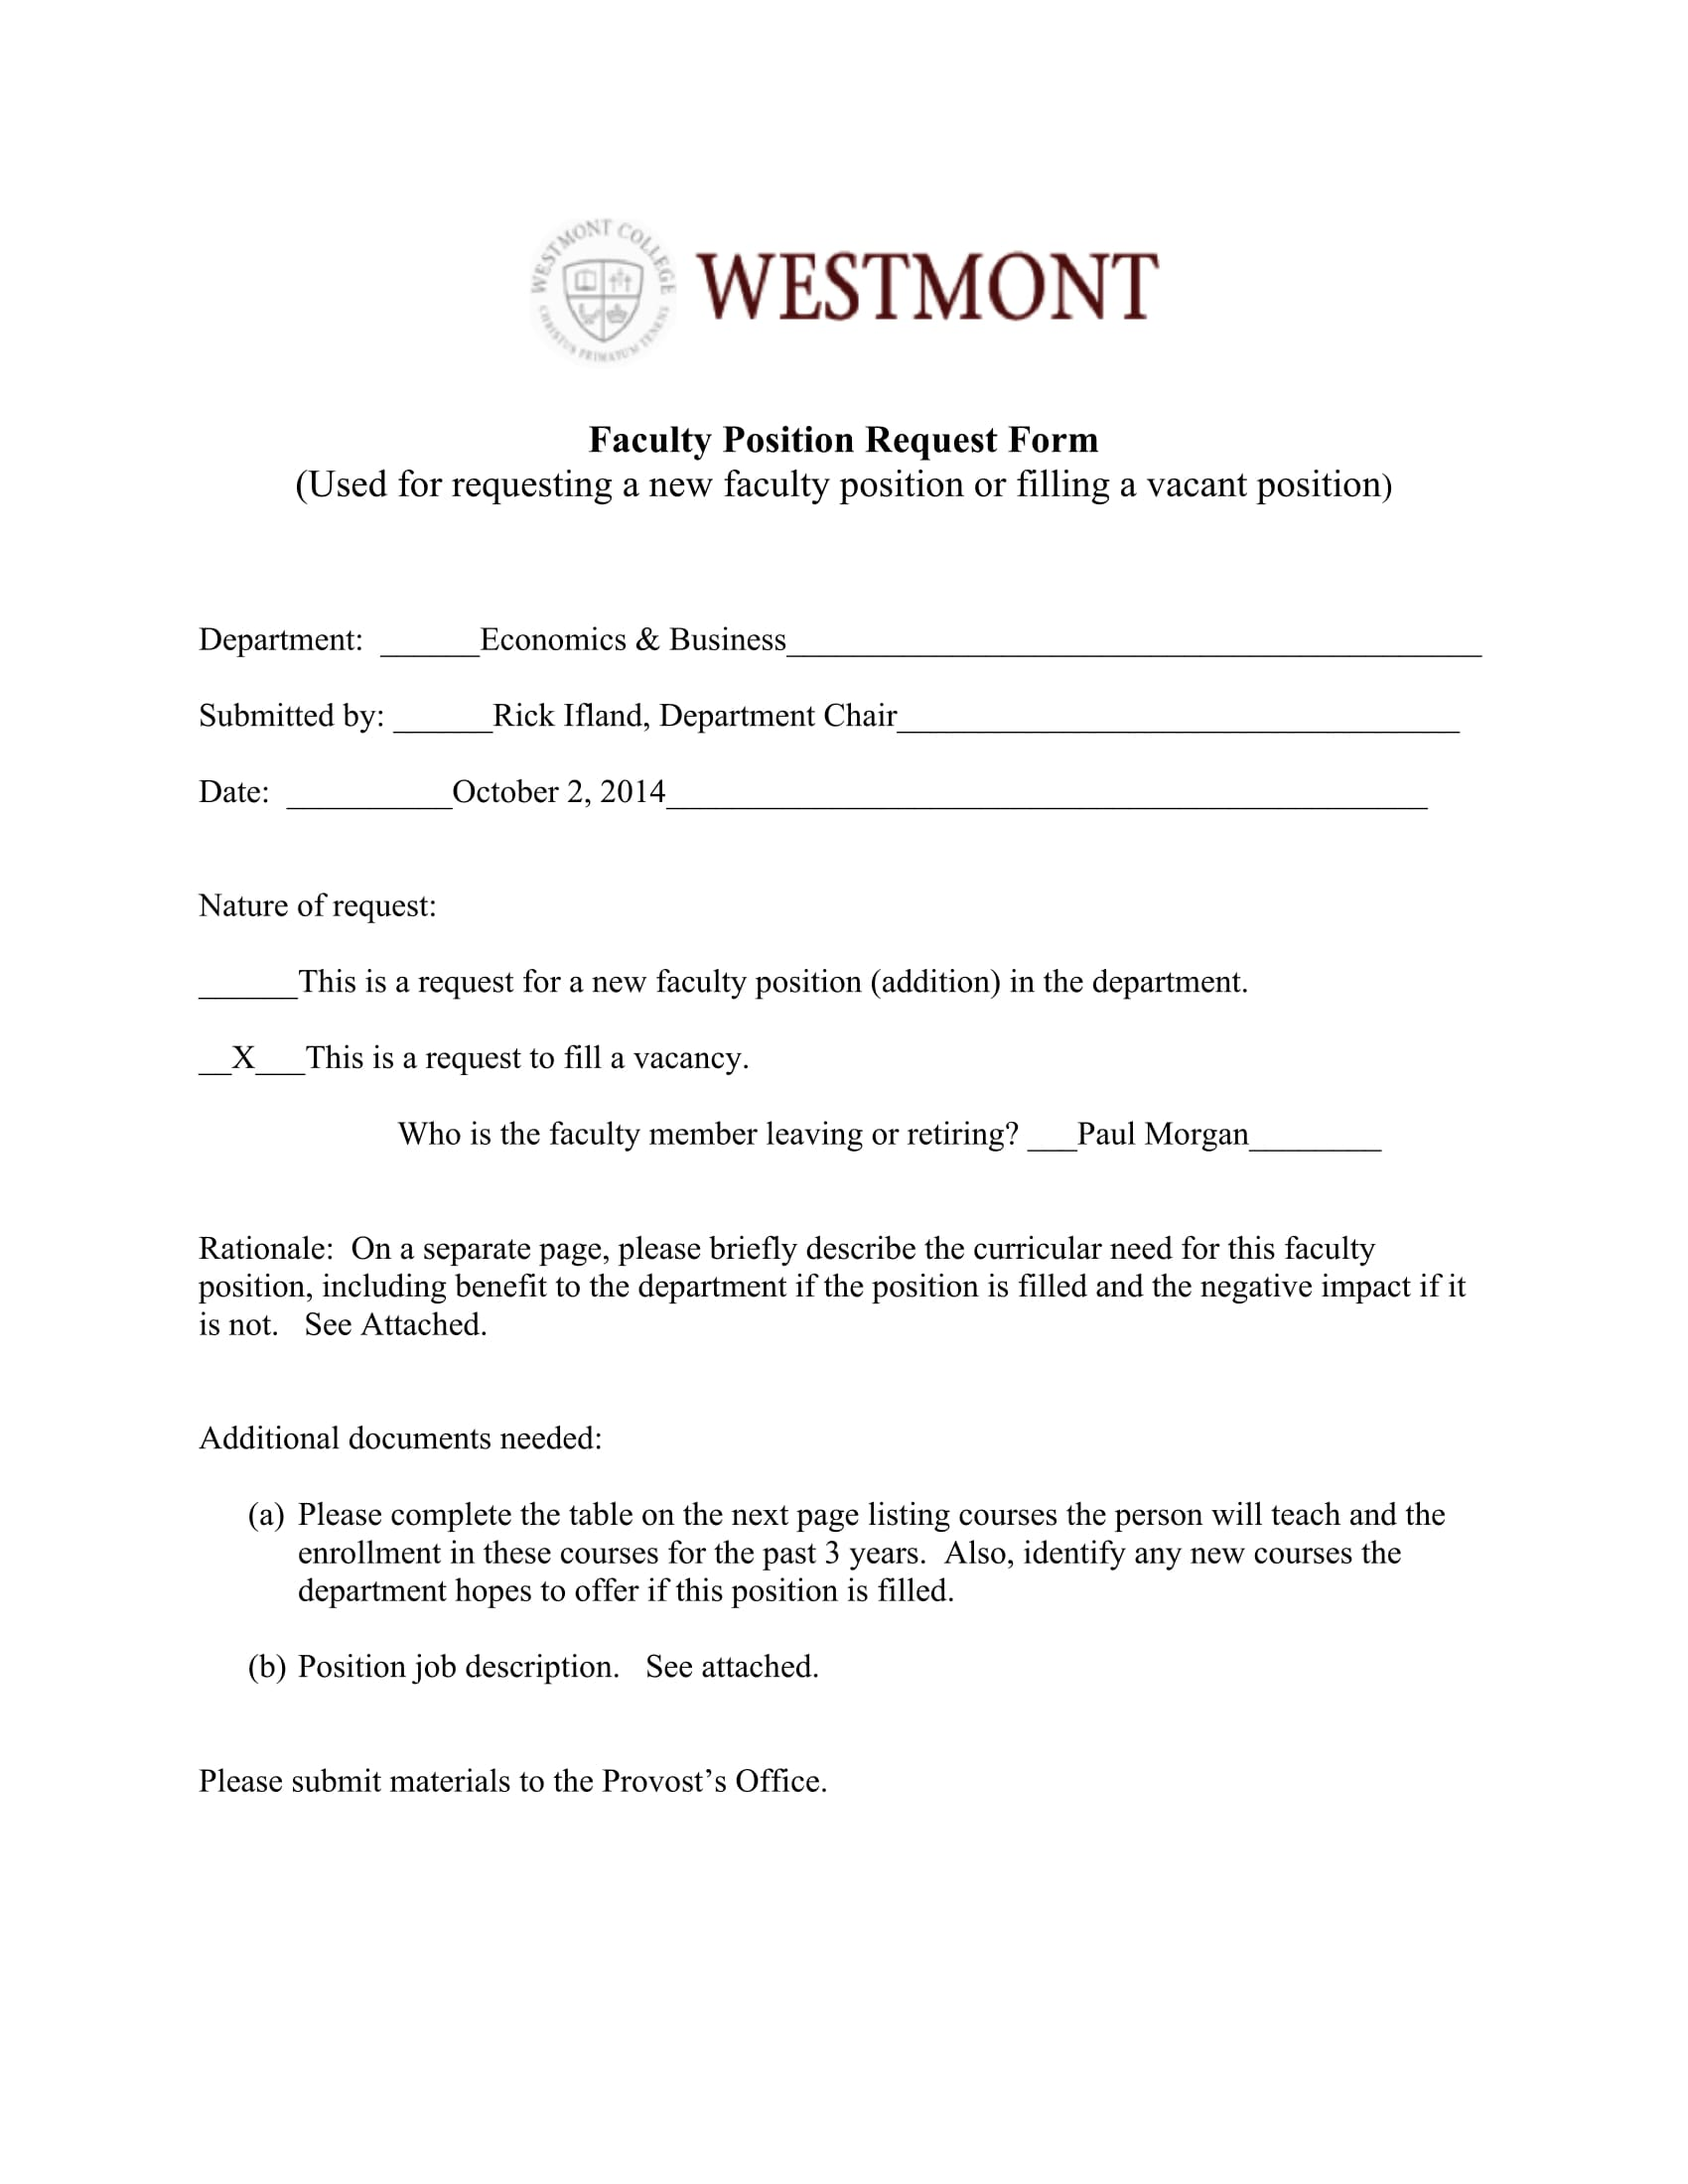 faculty position request form 1